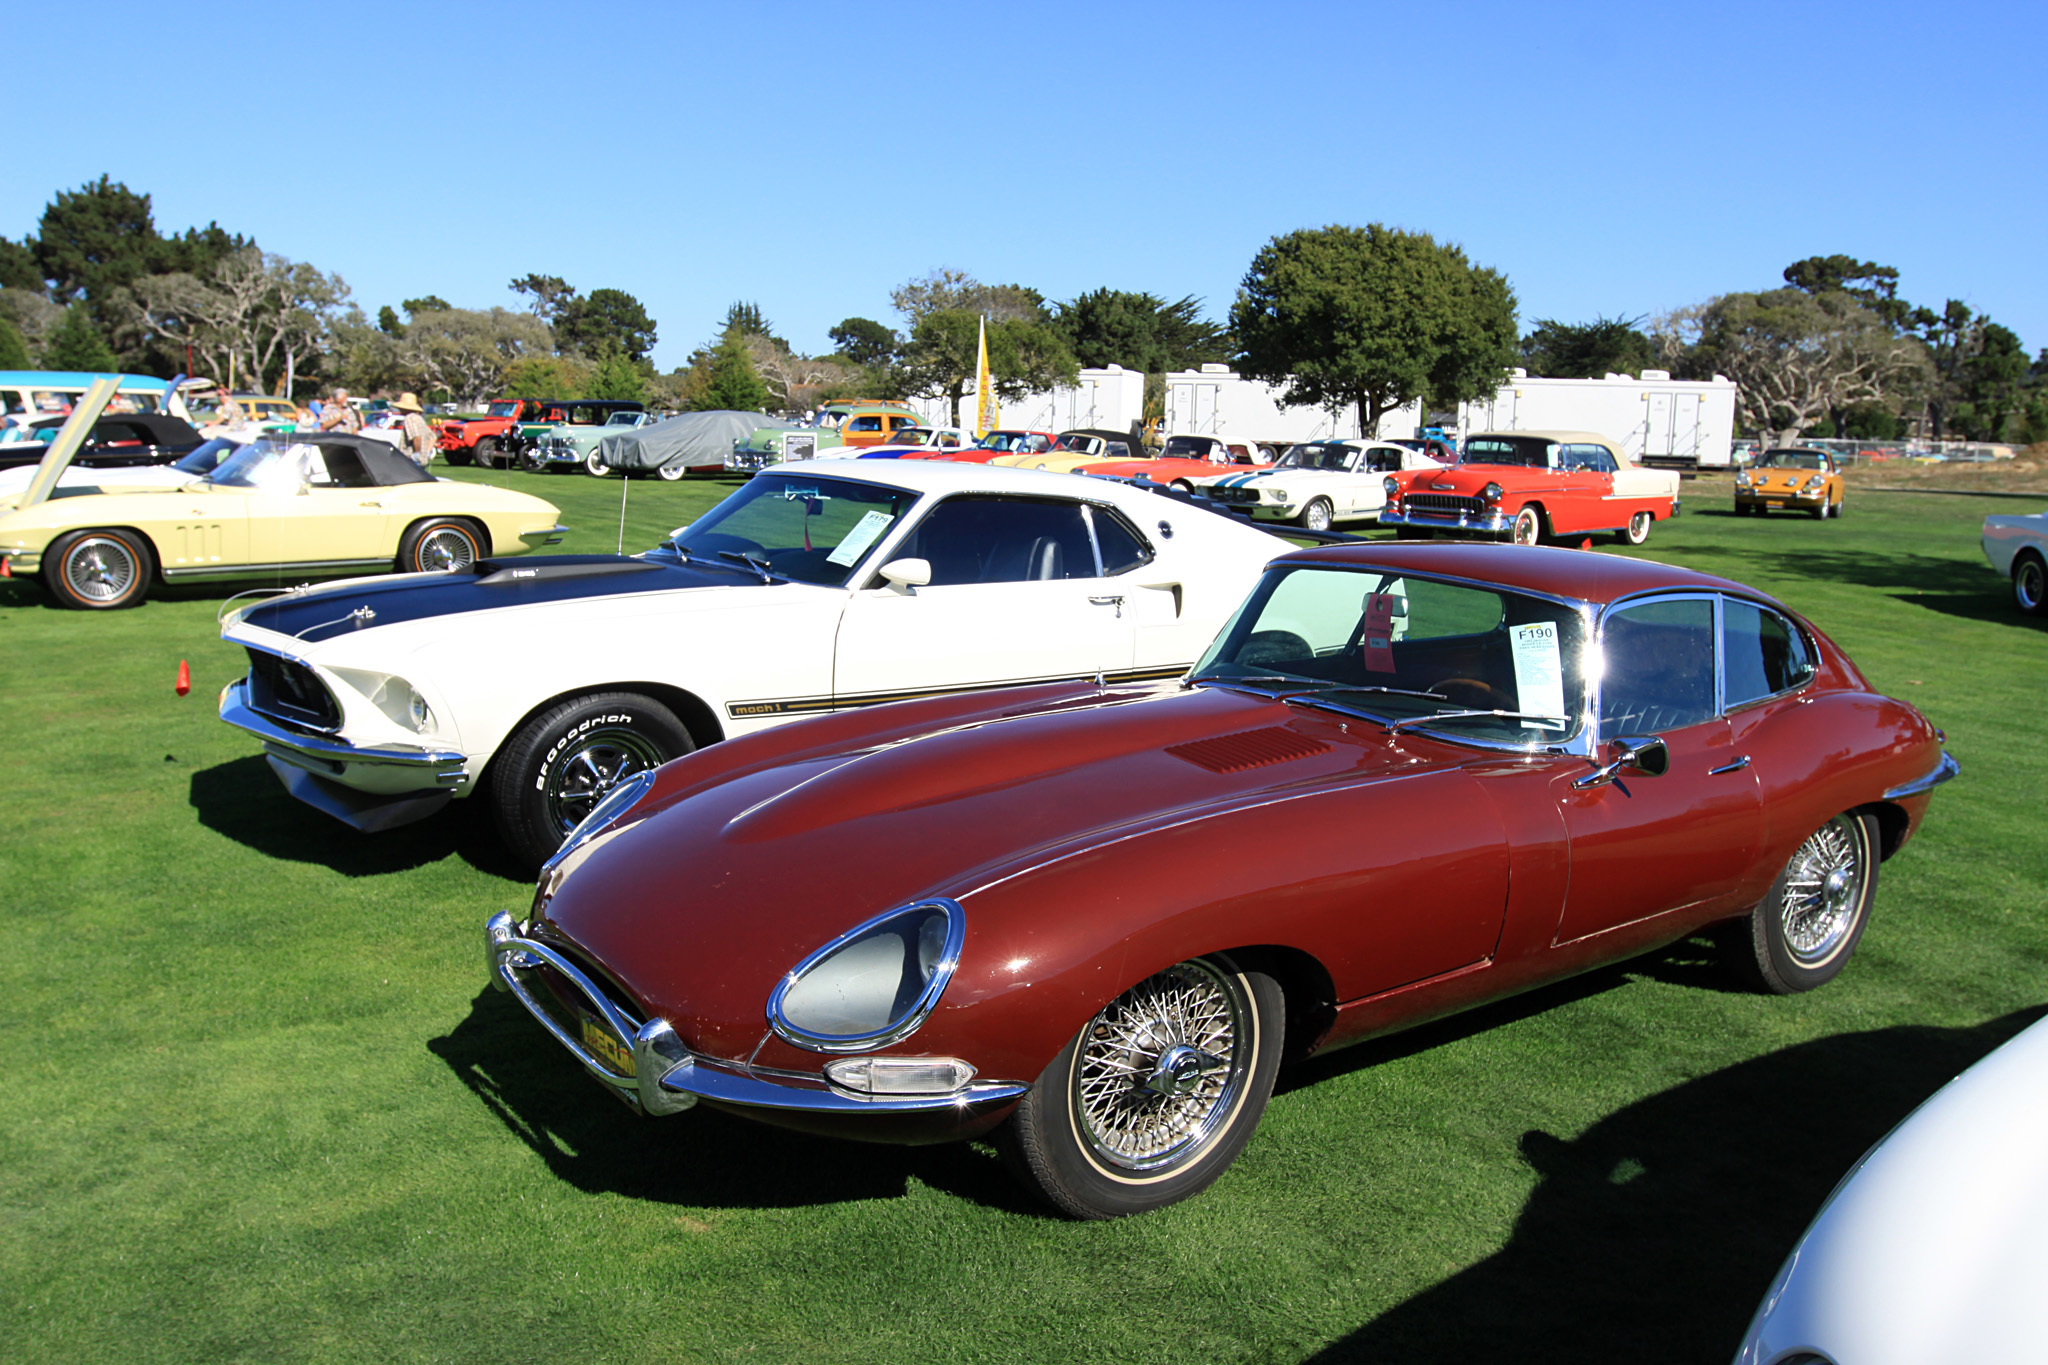 1967 Jaguar Series 1 E-Type Fixed Head Coupe 1E33454 - sold for $60,000 at Mecum. Series 1 XKE Fixed Head Coupe. Original 4.2L inline six cylinder. Engine No. 7E10182-9. Triple carburetors. 4-speed transmission. Opalescent Maroon paint with great patina. Black interior. 160 MPH speedometer. Jaguar wire wheels. Smiths gauges. Believed to be 12,563 original miles. Unique Series 1 Jag with covered headlamps, front and rear marker lights above the bumpers and center exiting exhaust.